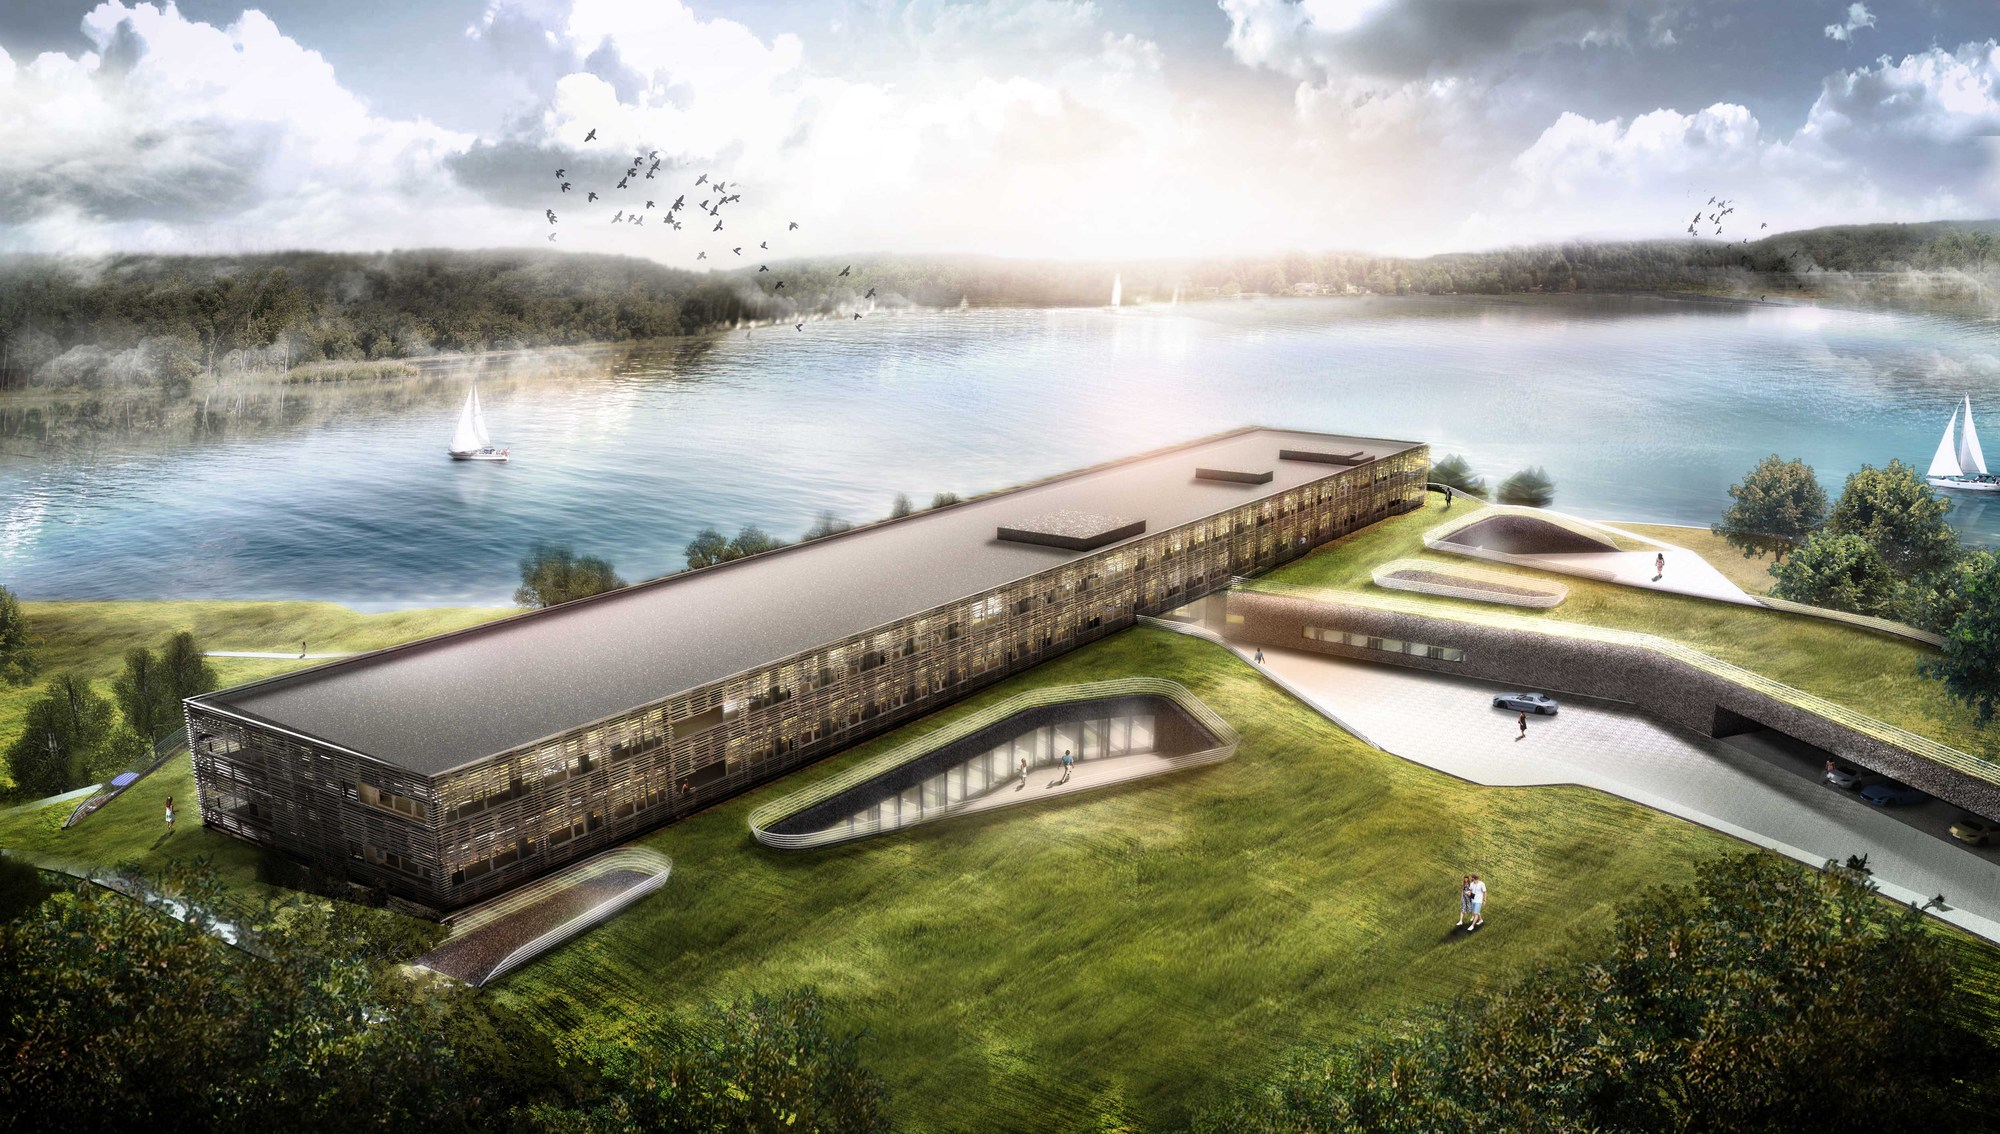 graft begins construction on lakeside hotel and spa in germany archdaily. Black Bedroom Furniture Sets. Home Design Ideas